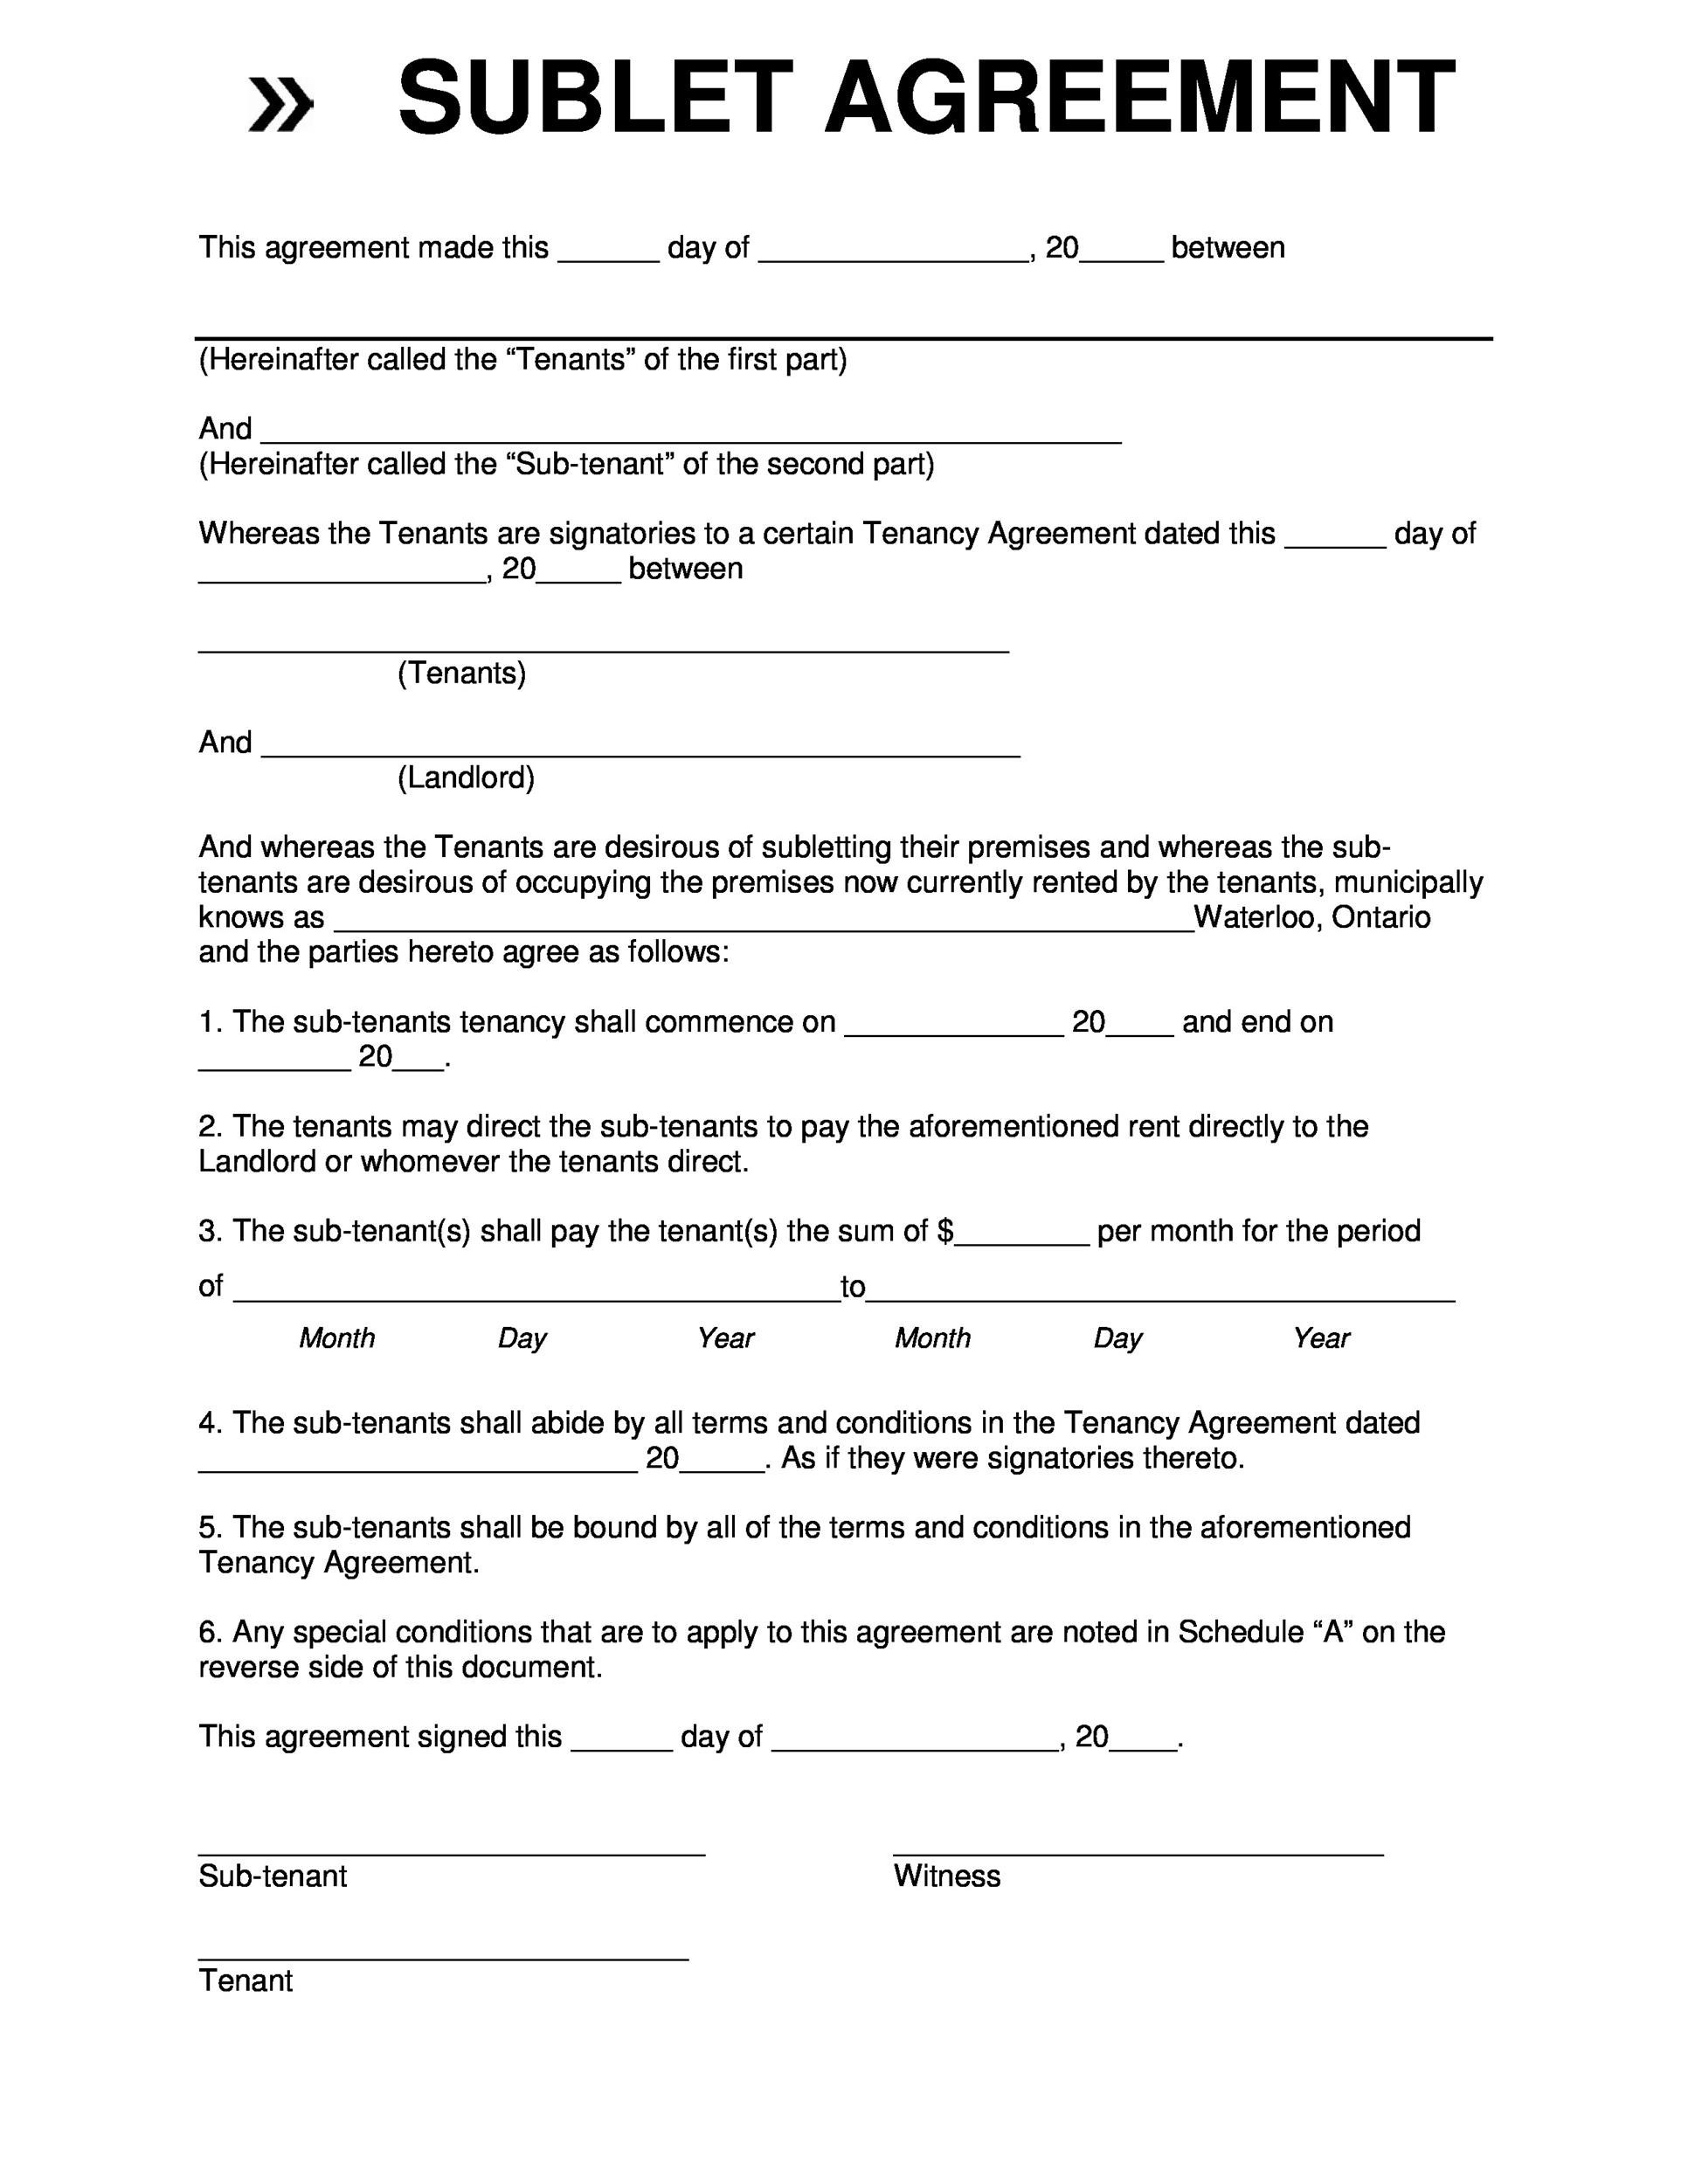 Free Sublease Agreement Template 19 Printable